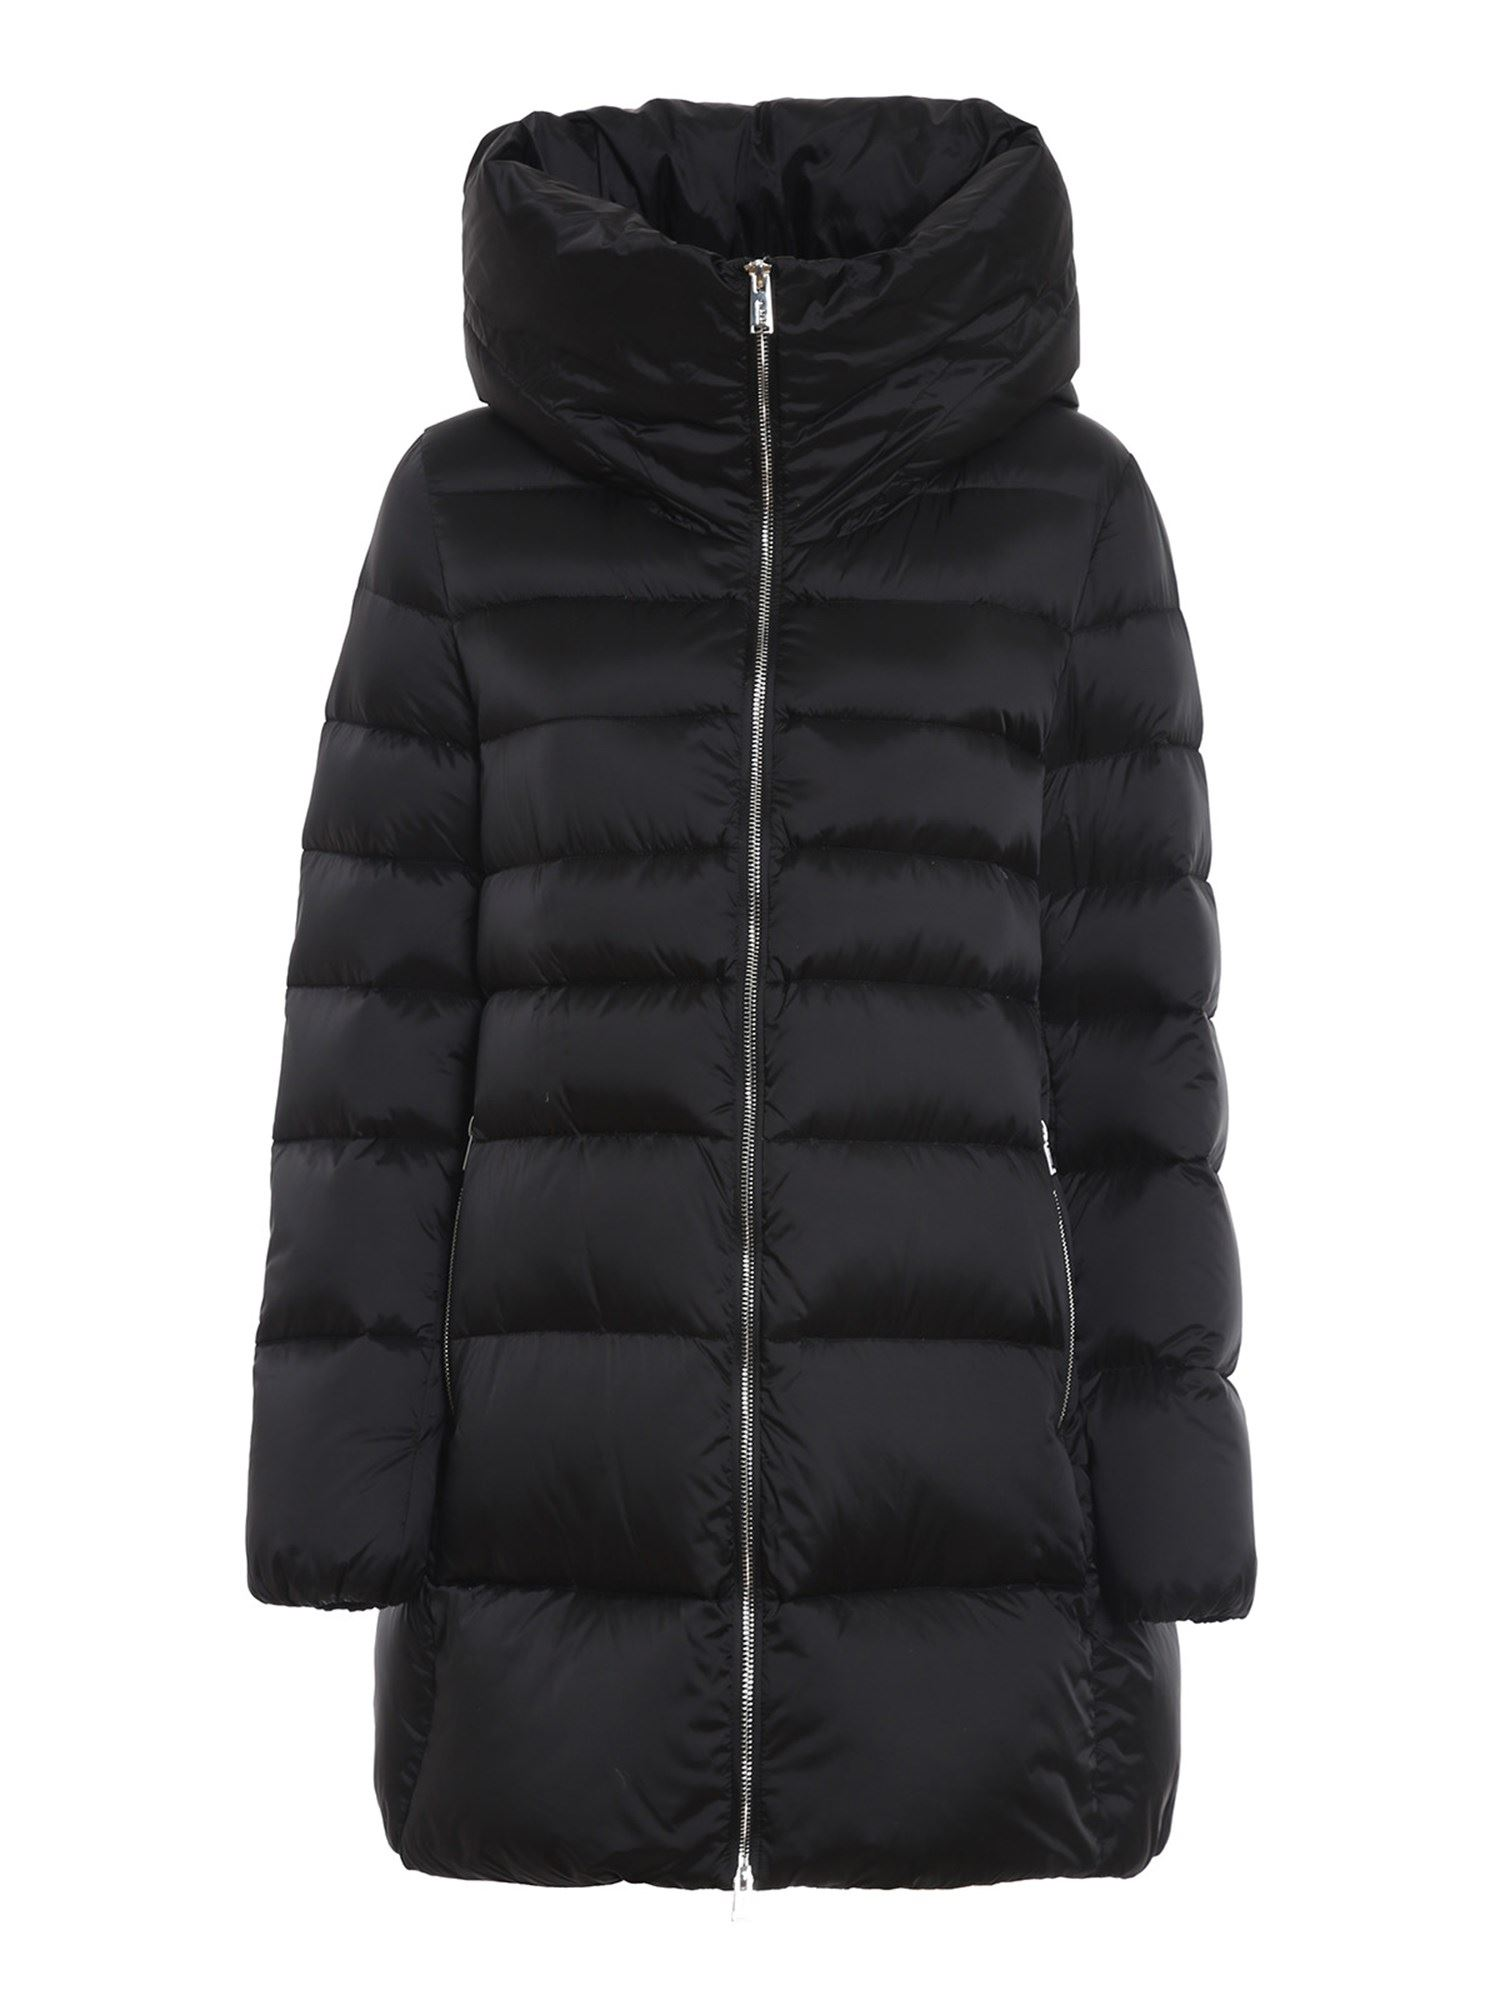 ADD ADD BLACK QUILTED LONGUETTE PUFFER JACKET